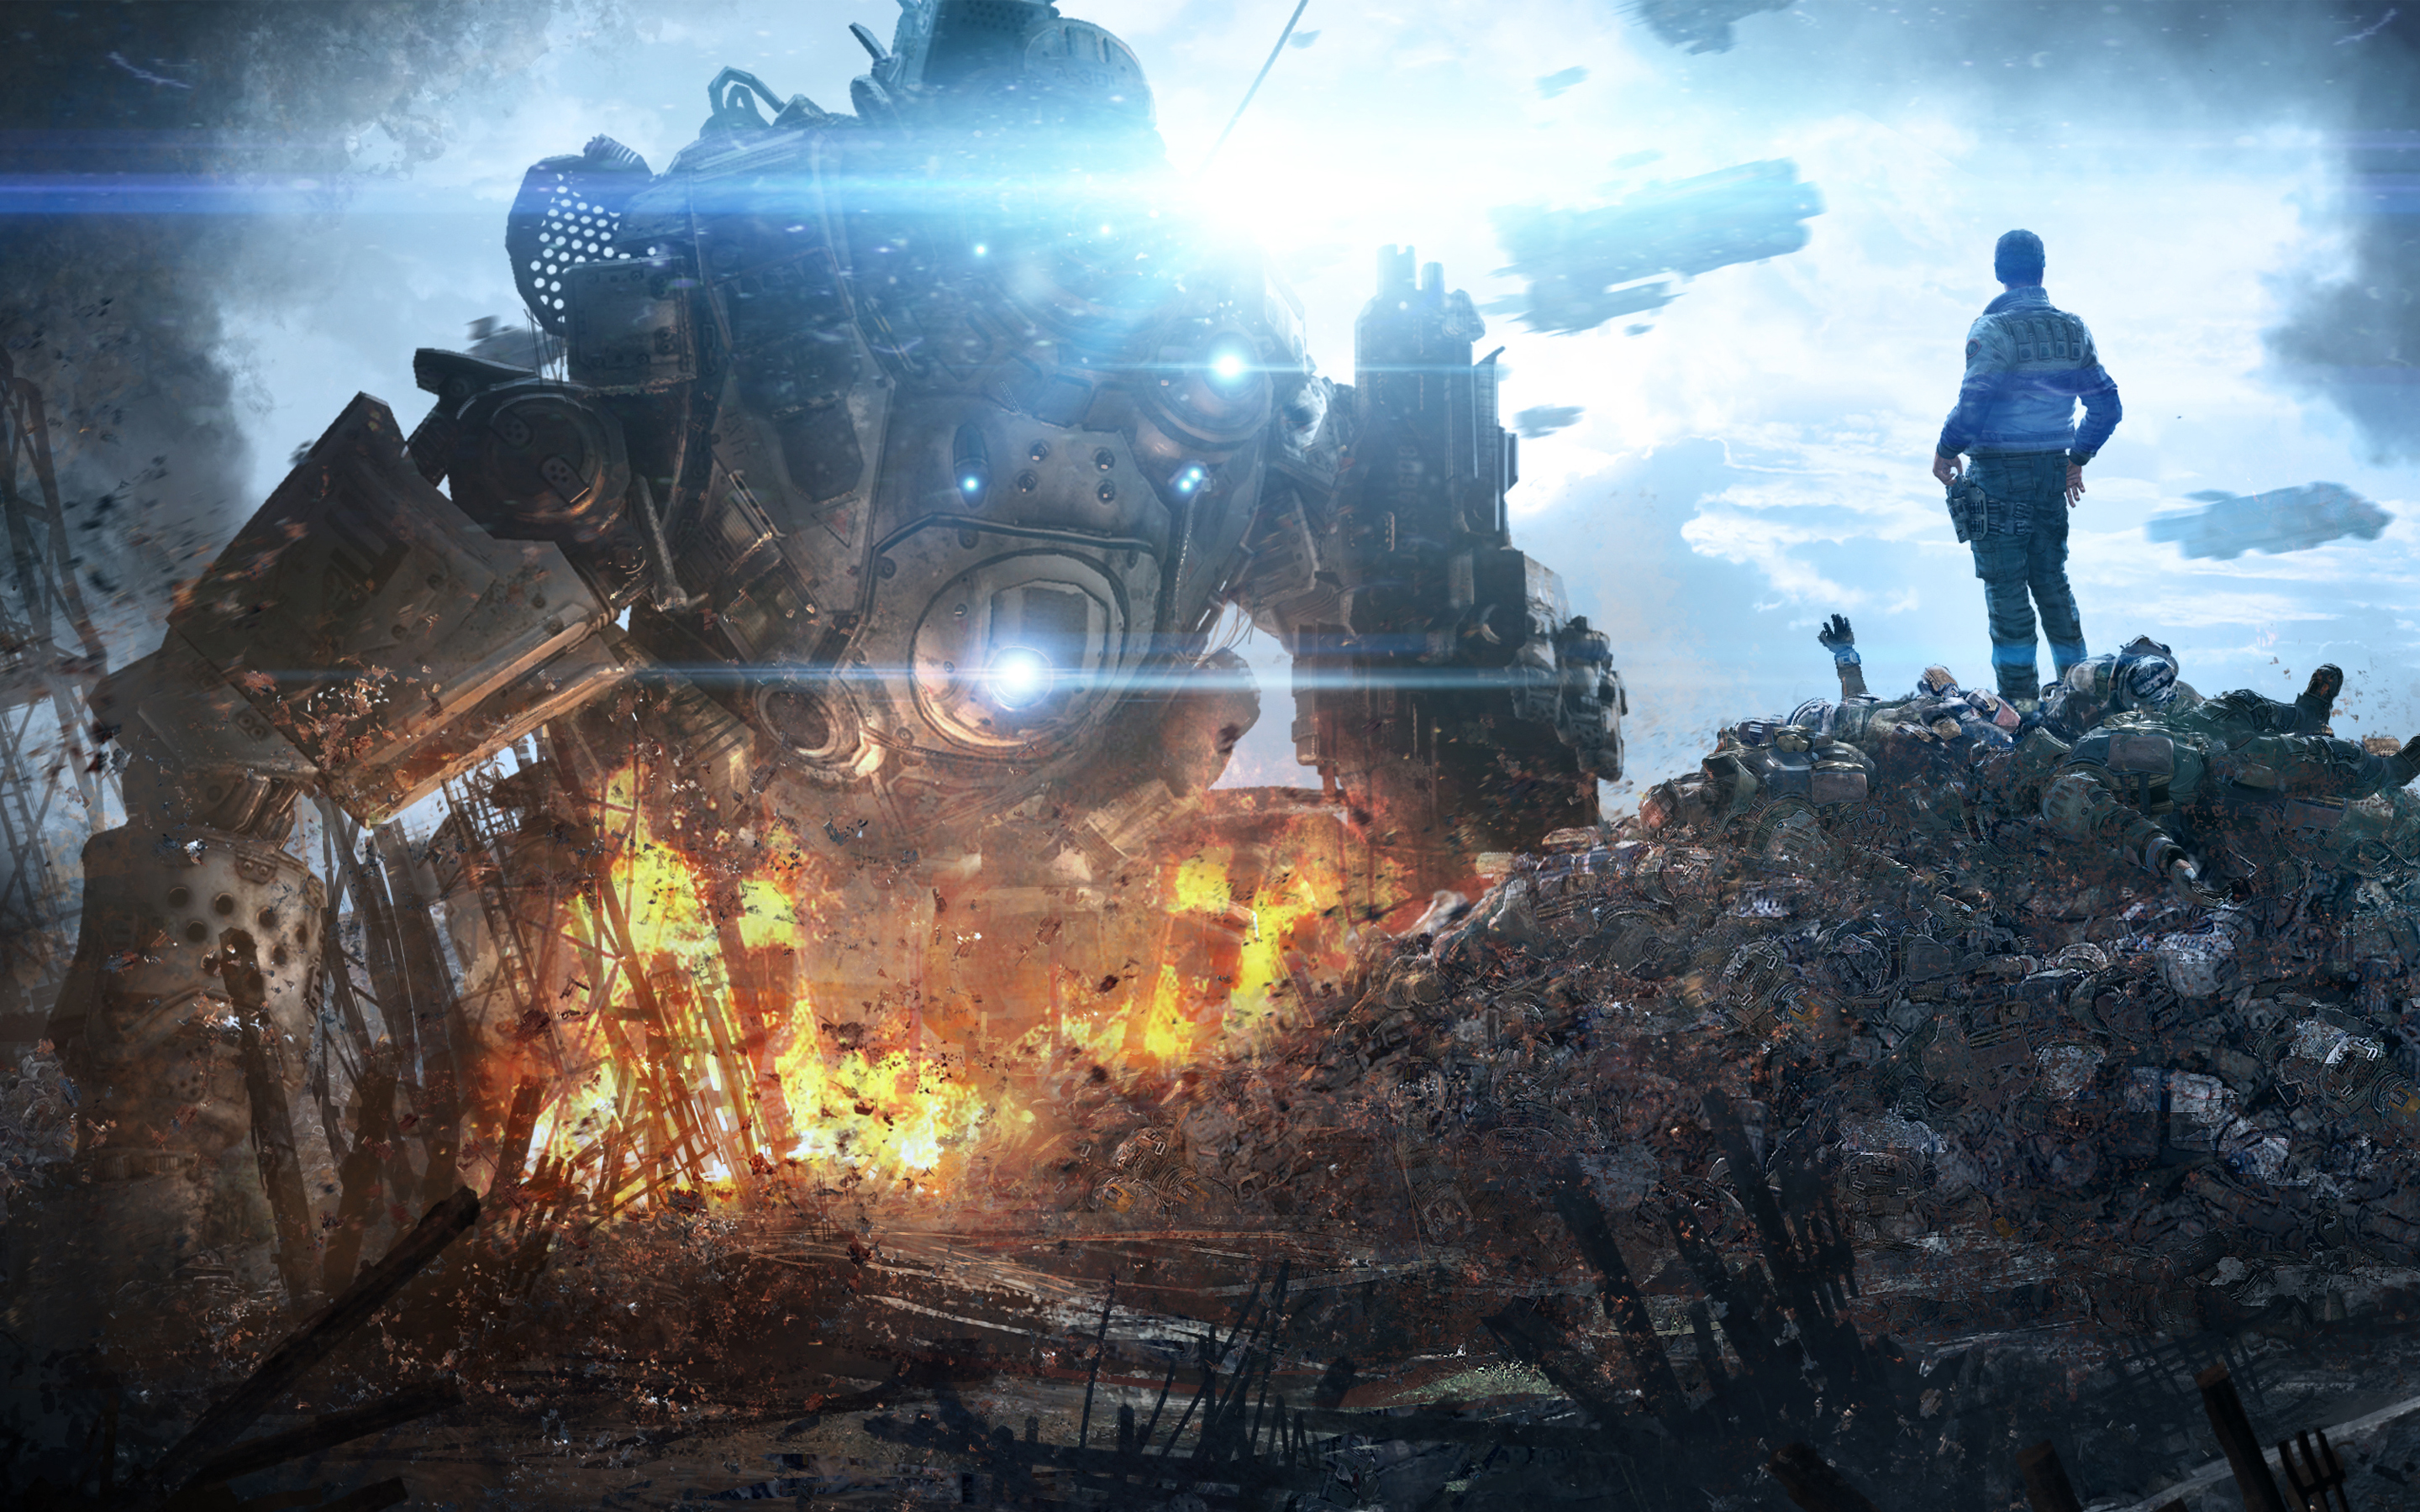 HD Wallpapers Titanfall Game 2014